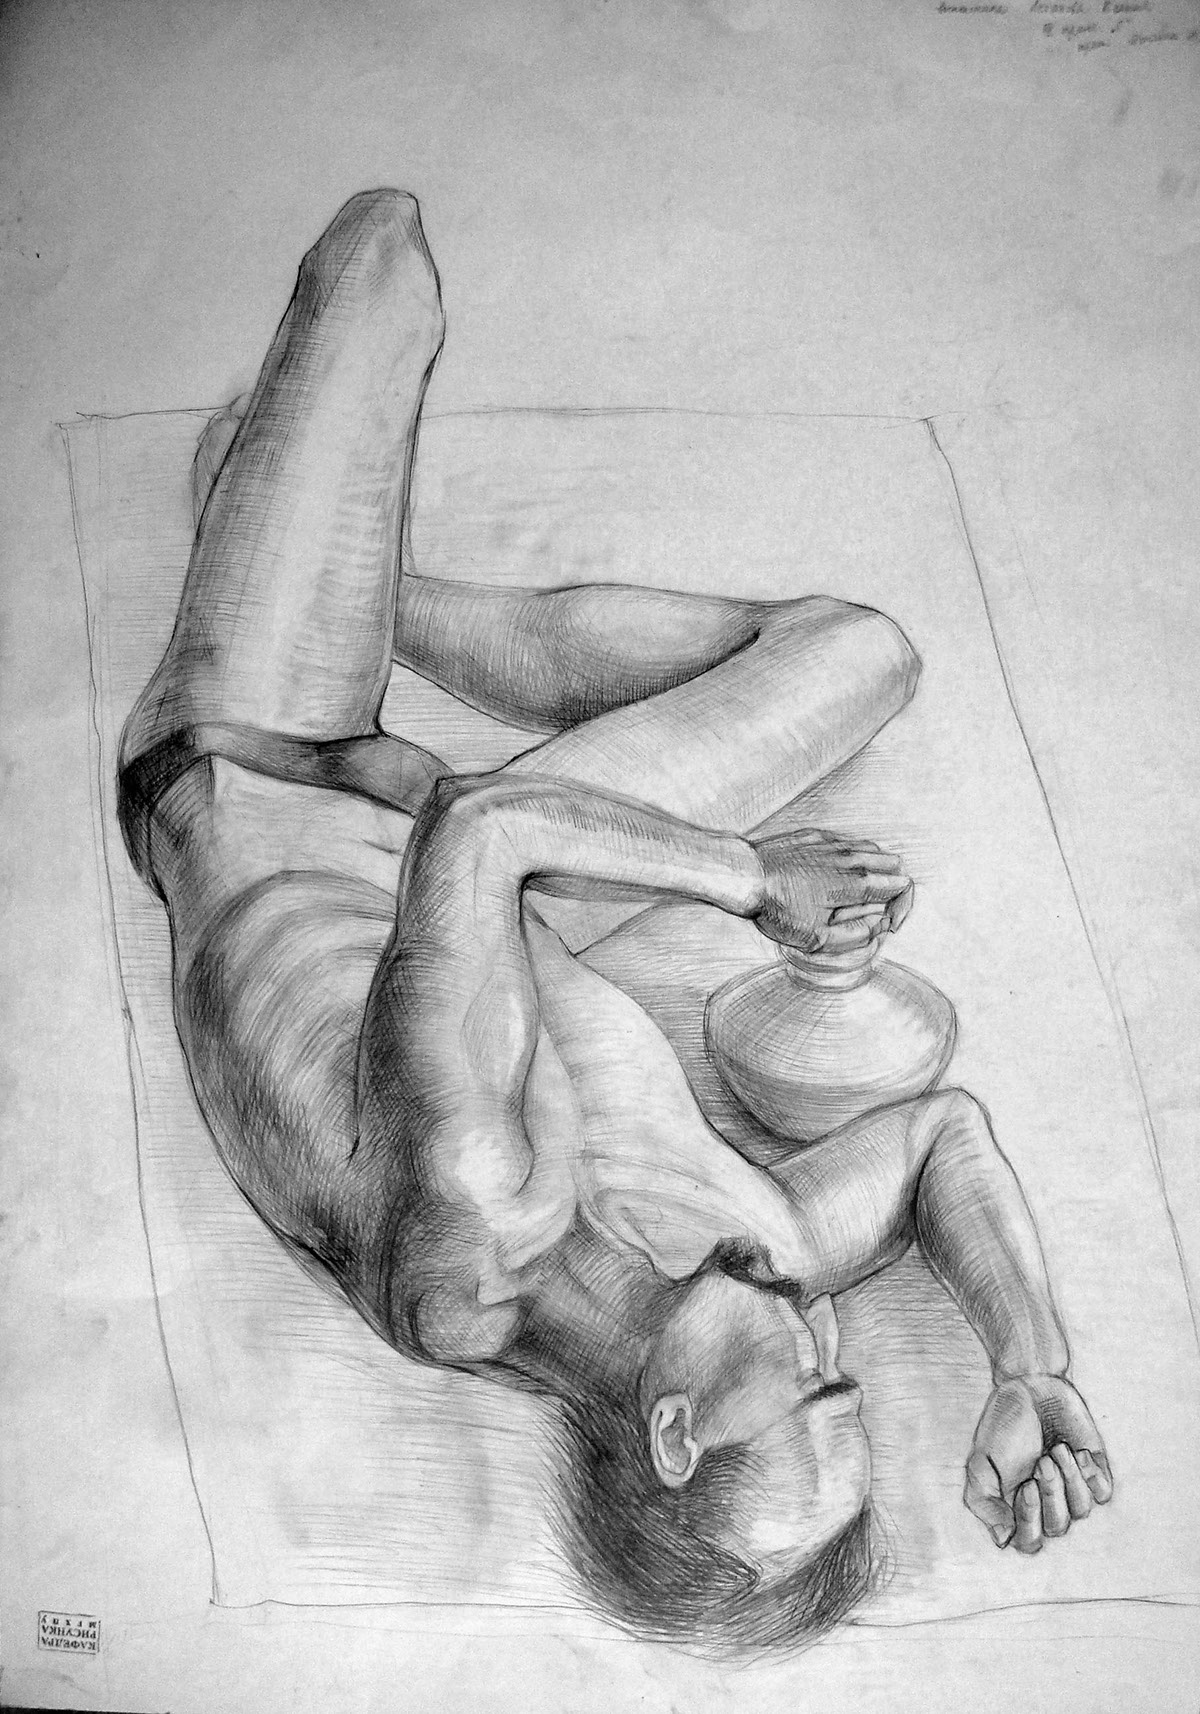 Different drawings in pencil made in sketchbook or during my student years enjoy